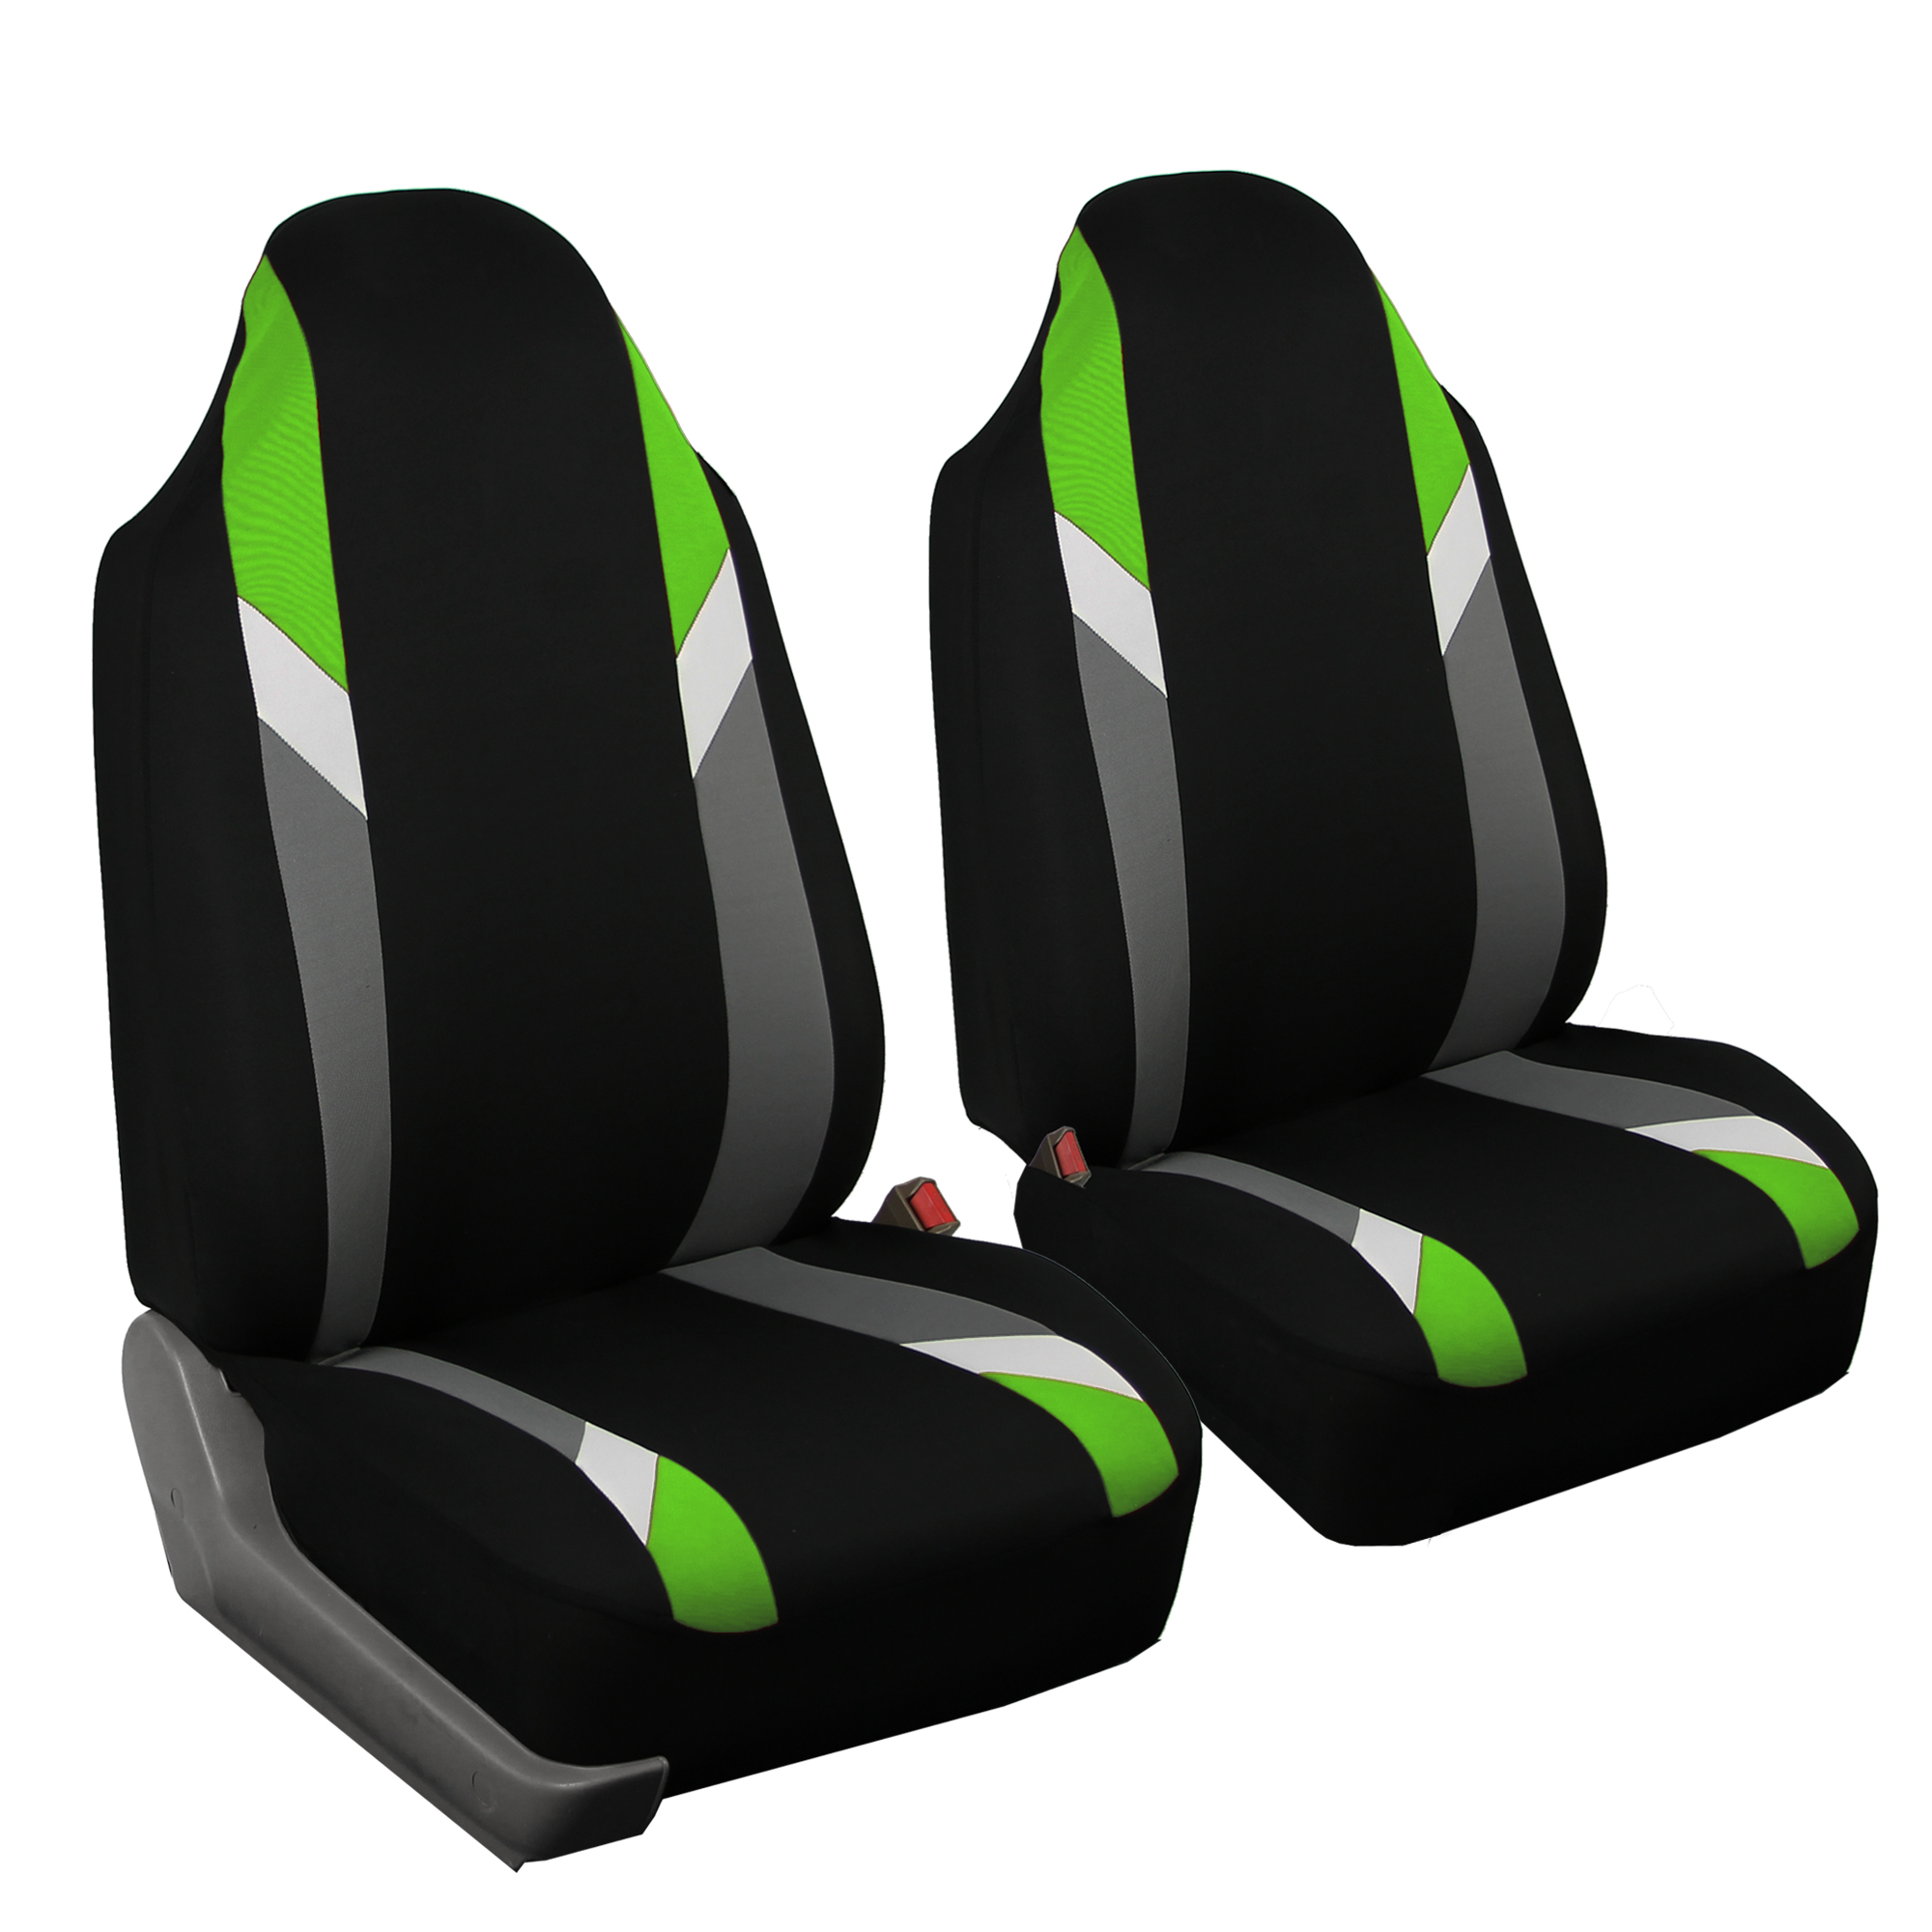 FH GROUP Premium Modernistic Front Set Car Seat Covers, Green